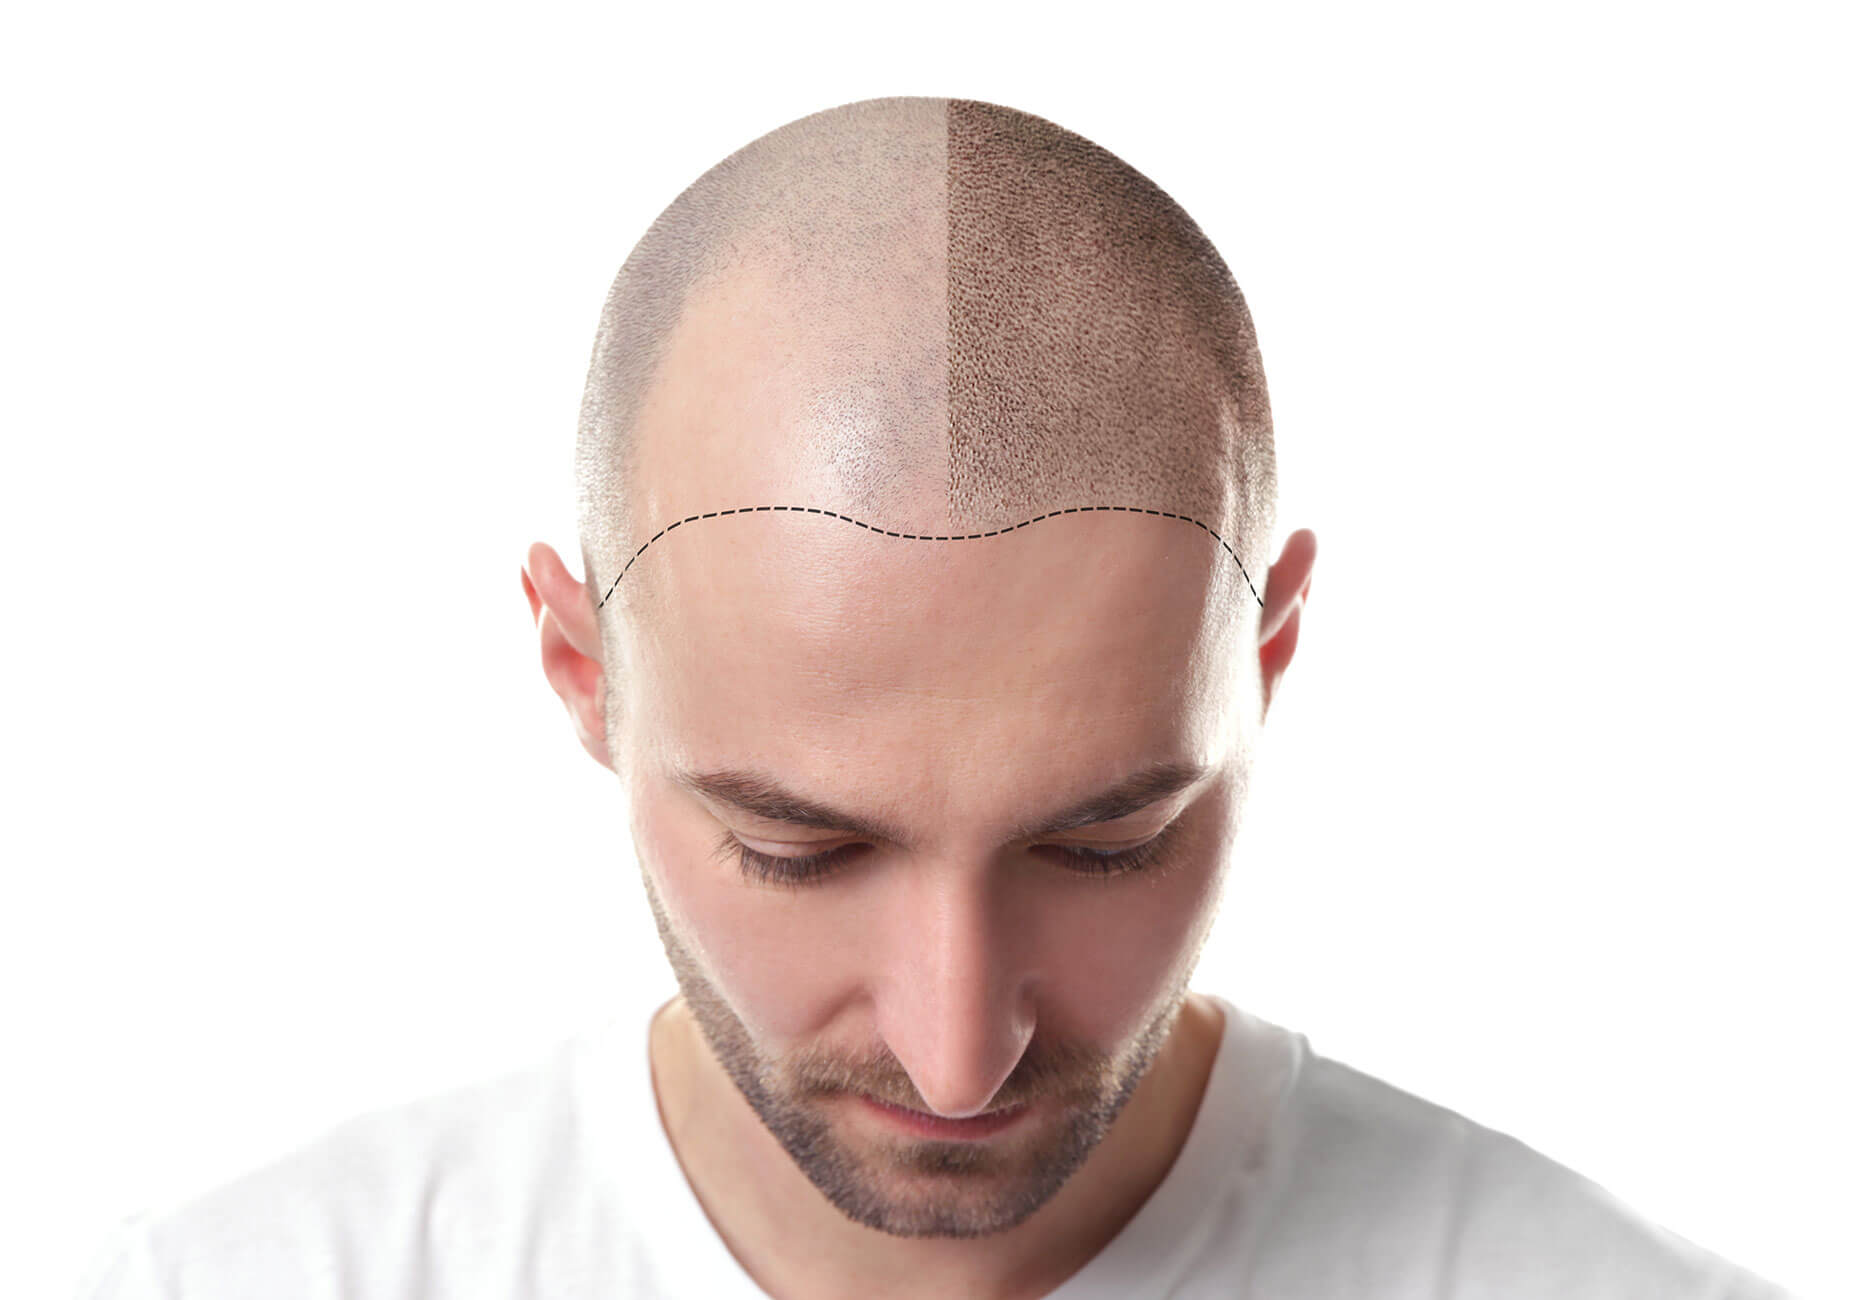 A man's head, showing an outline where the right half of his head has a normal hairline and the left half of his head has temple baldness